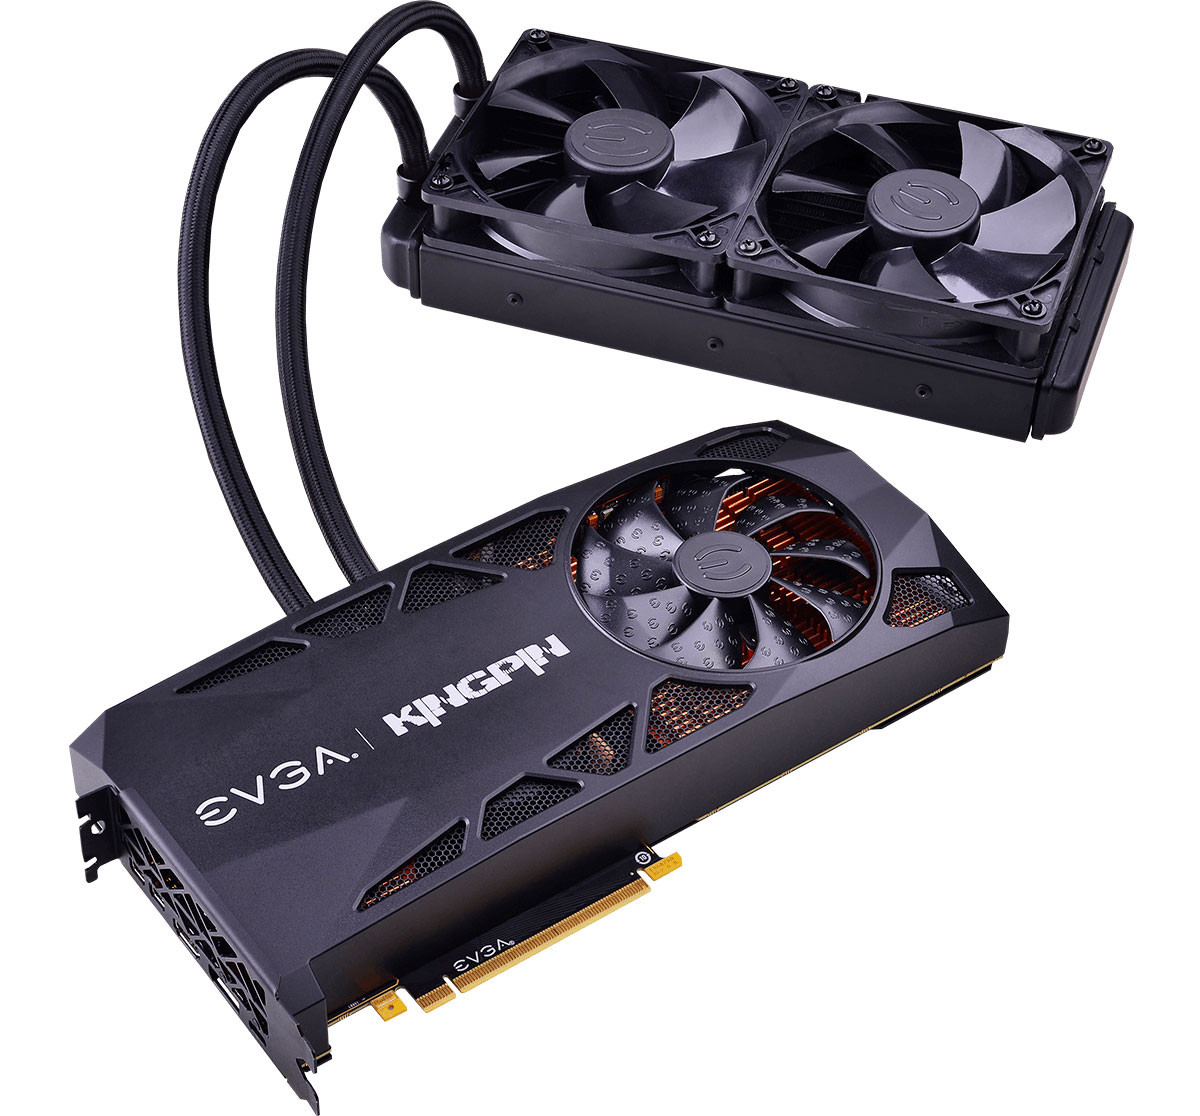 EVGA GeForce RTX 2080 Ti KINGPIN Available Now for USD